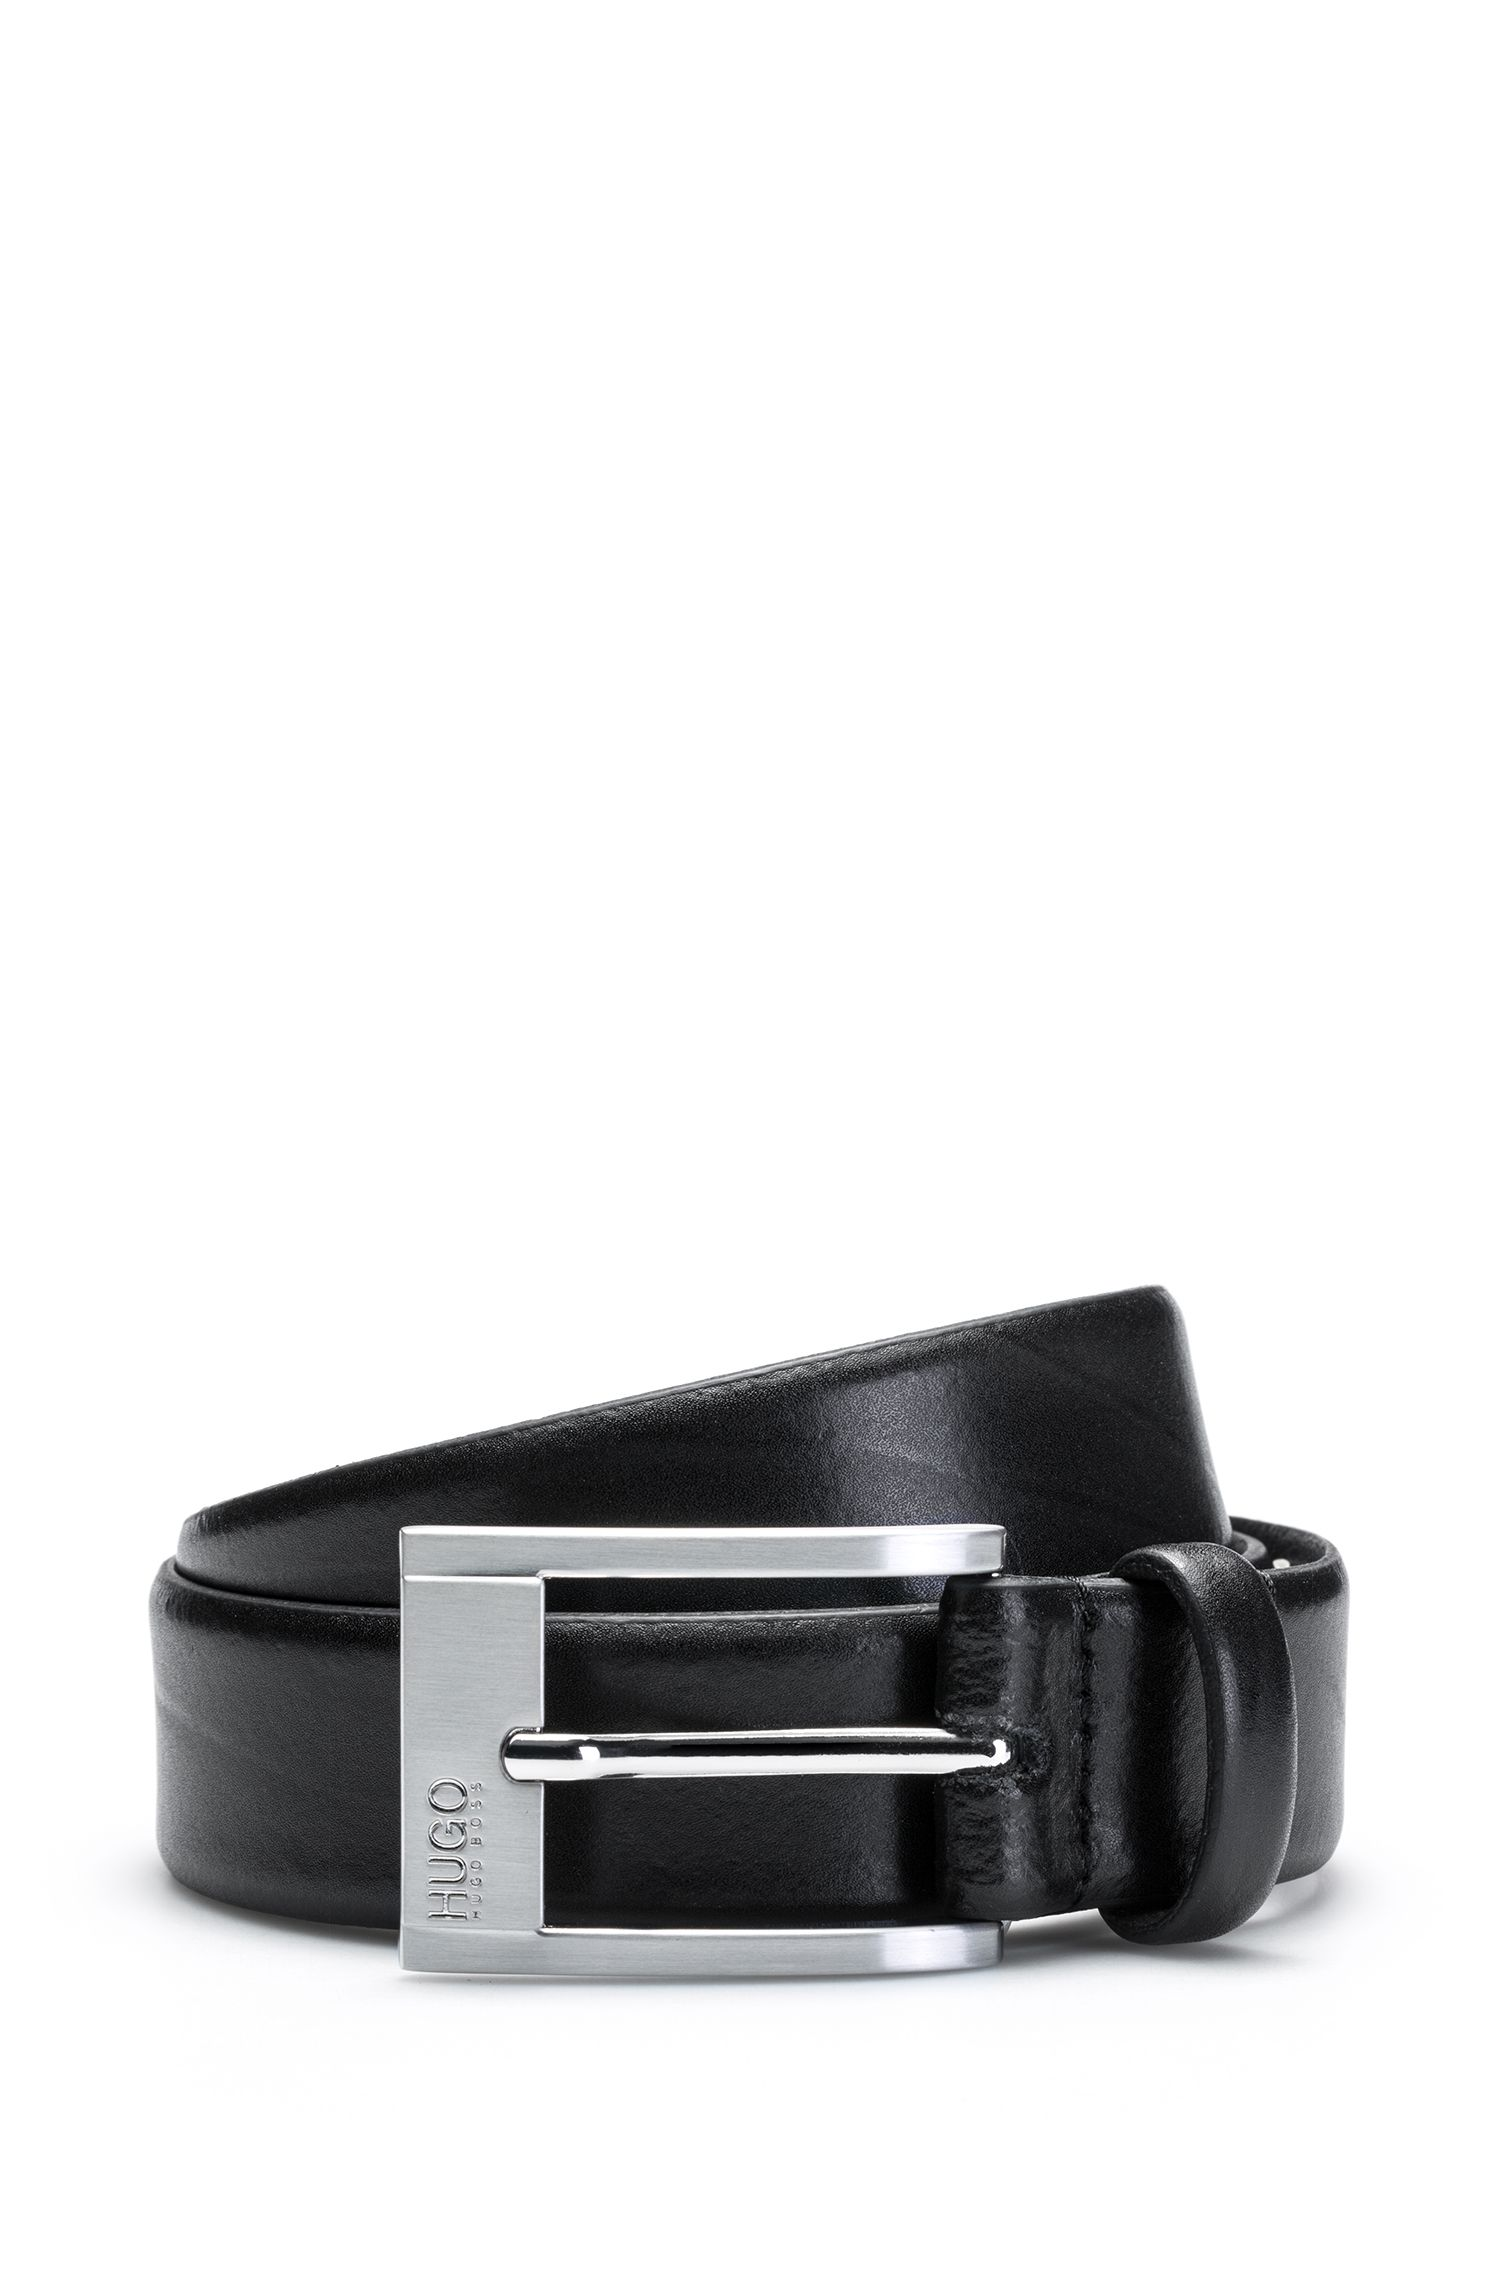 Leather belt with engraved pin buckle